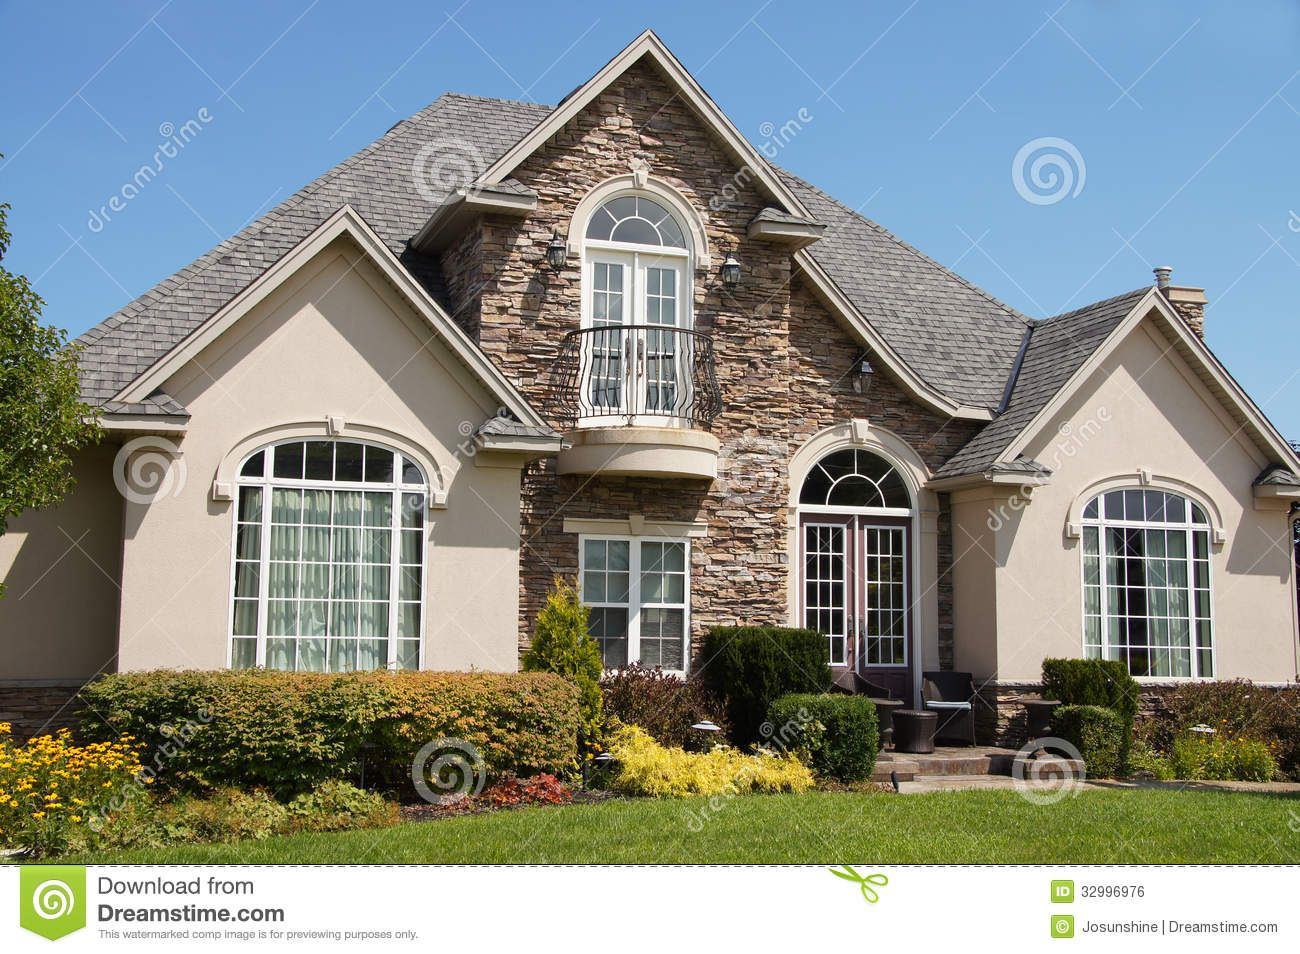 Stucco stone house pretty windows royalty free stock image for Stucco stone exterior designs